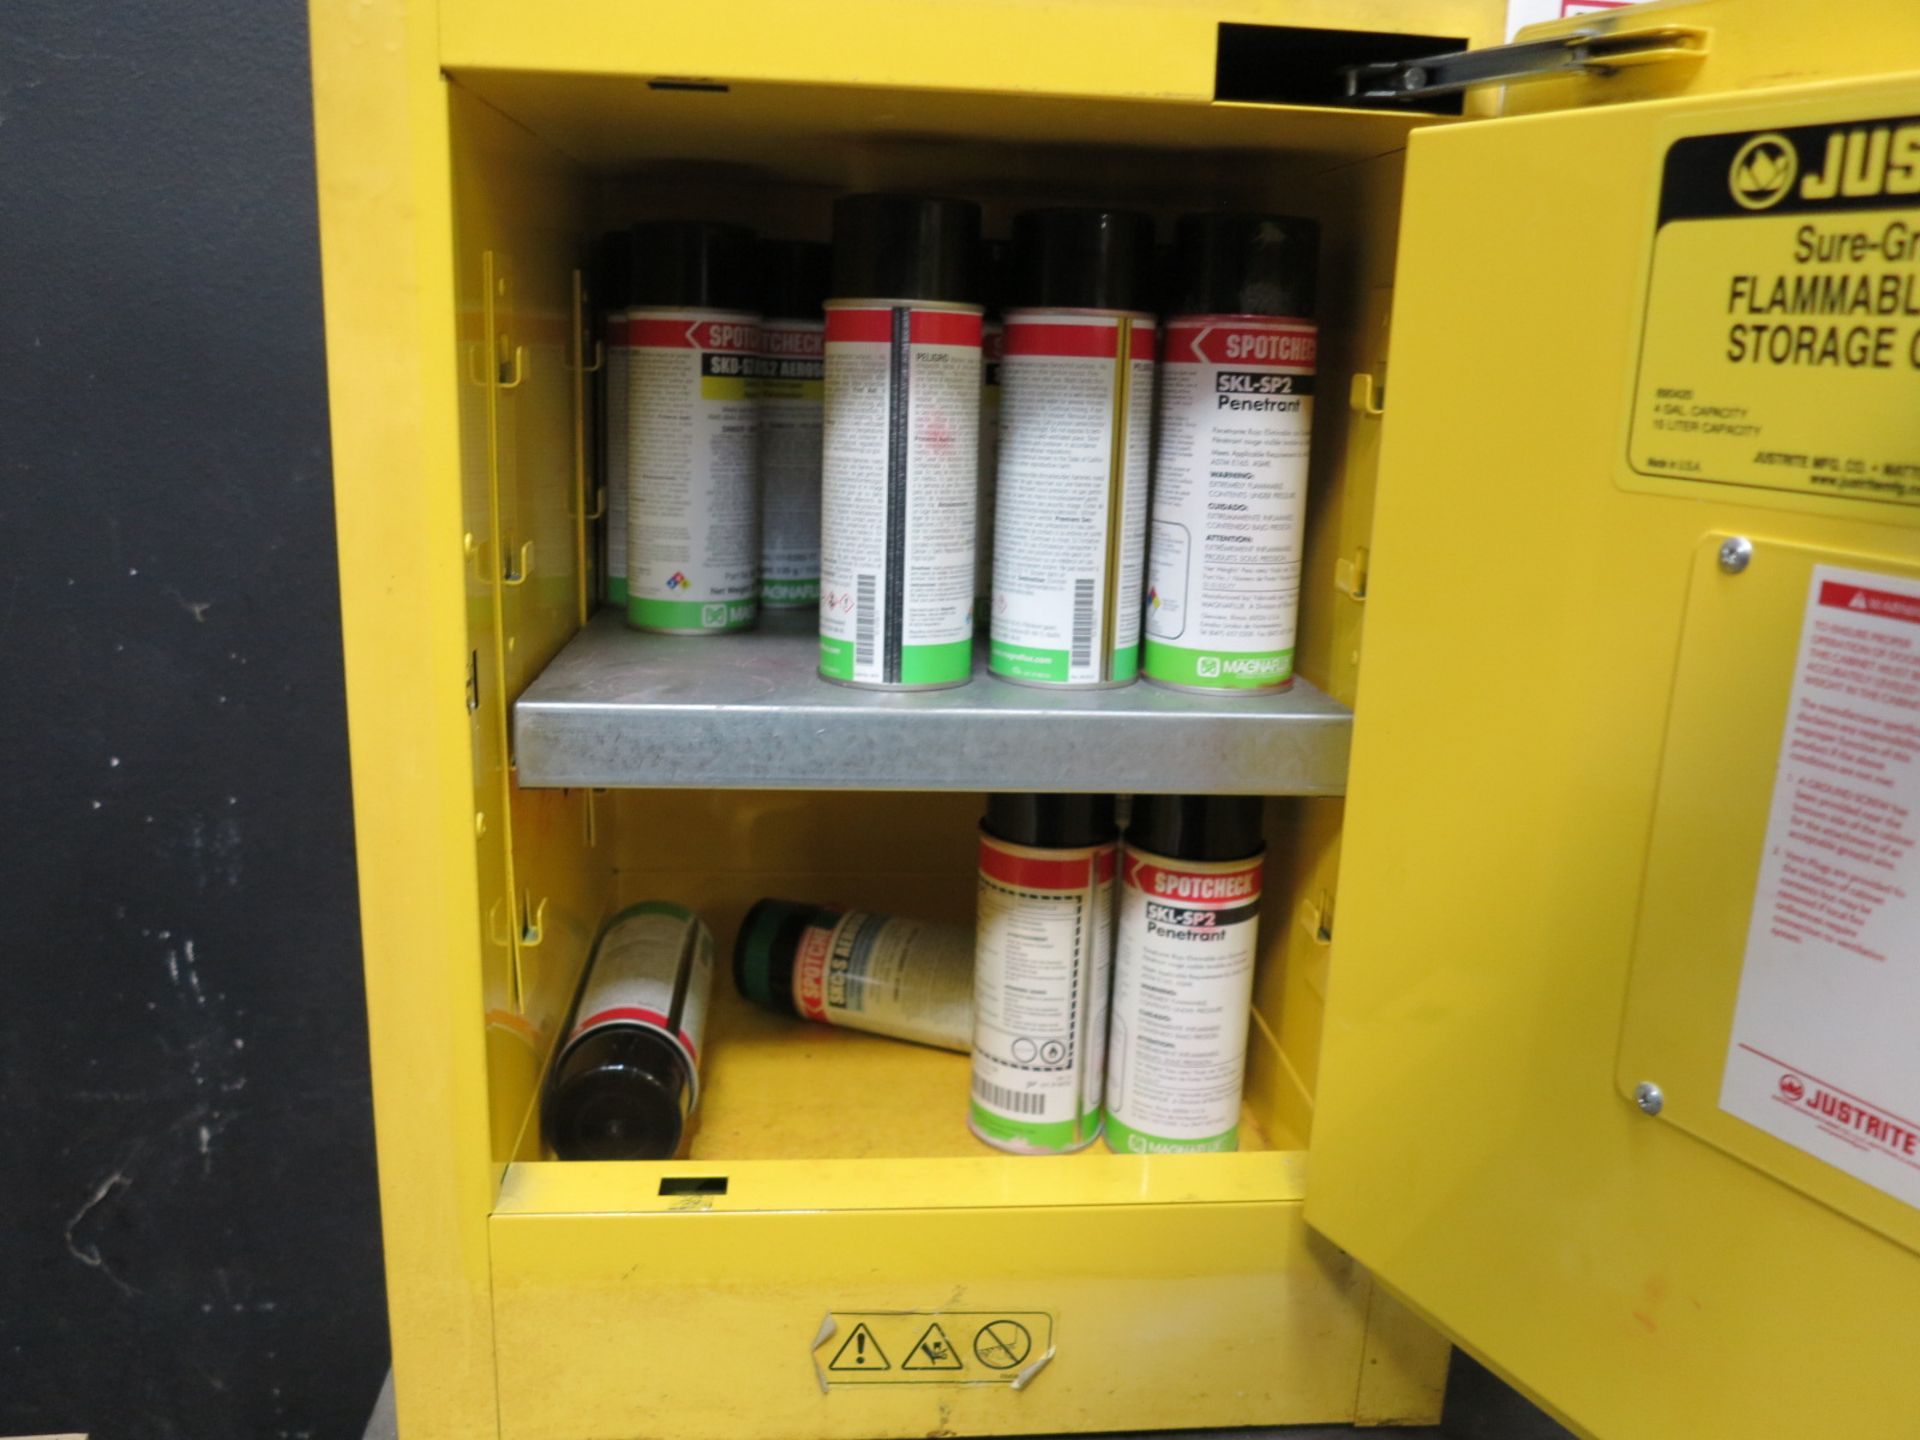 Lot 724 - JUSTRITE 4-GALLON FLAMMABLE STORAGE CABINET, W/ CONTENTS